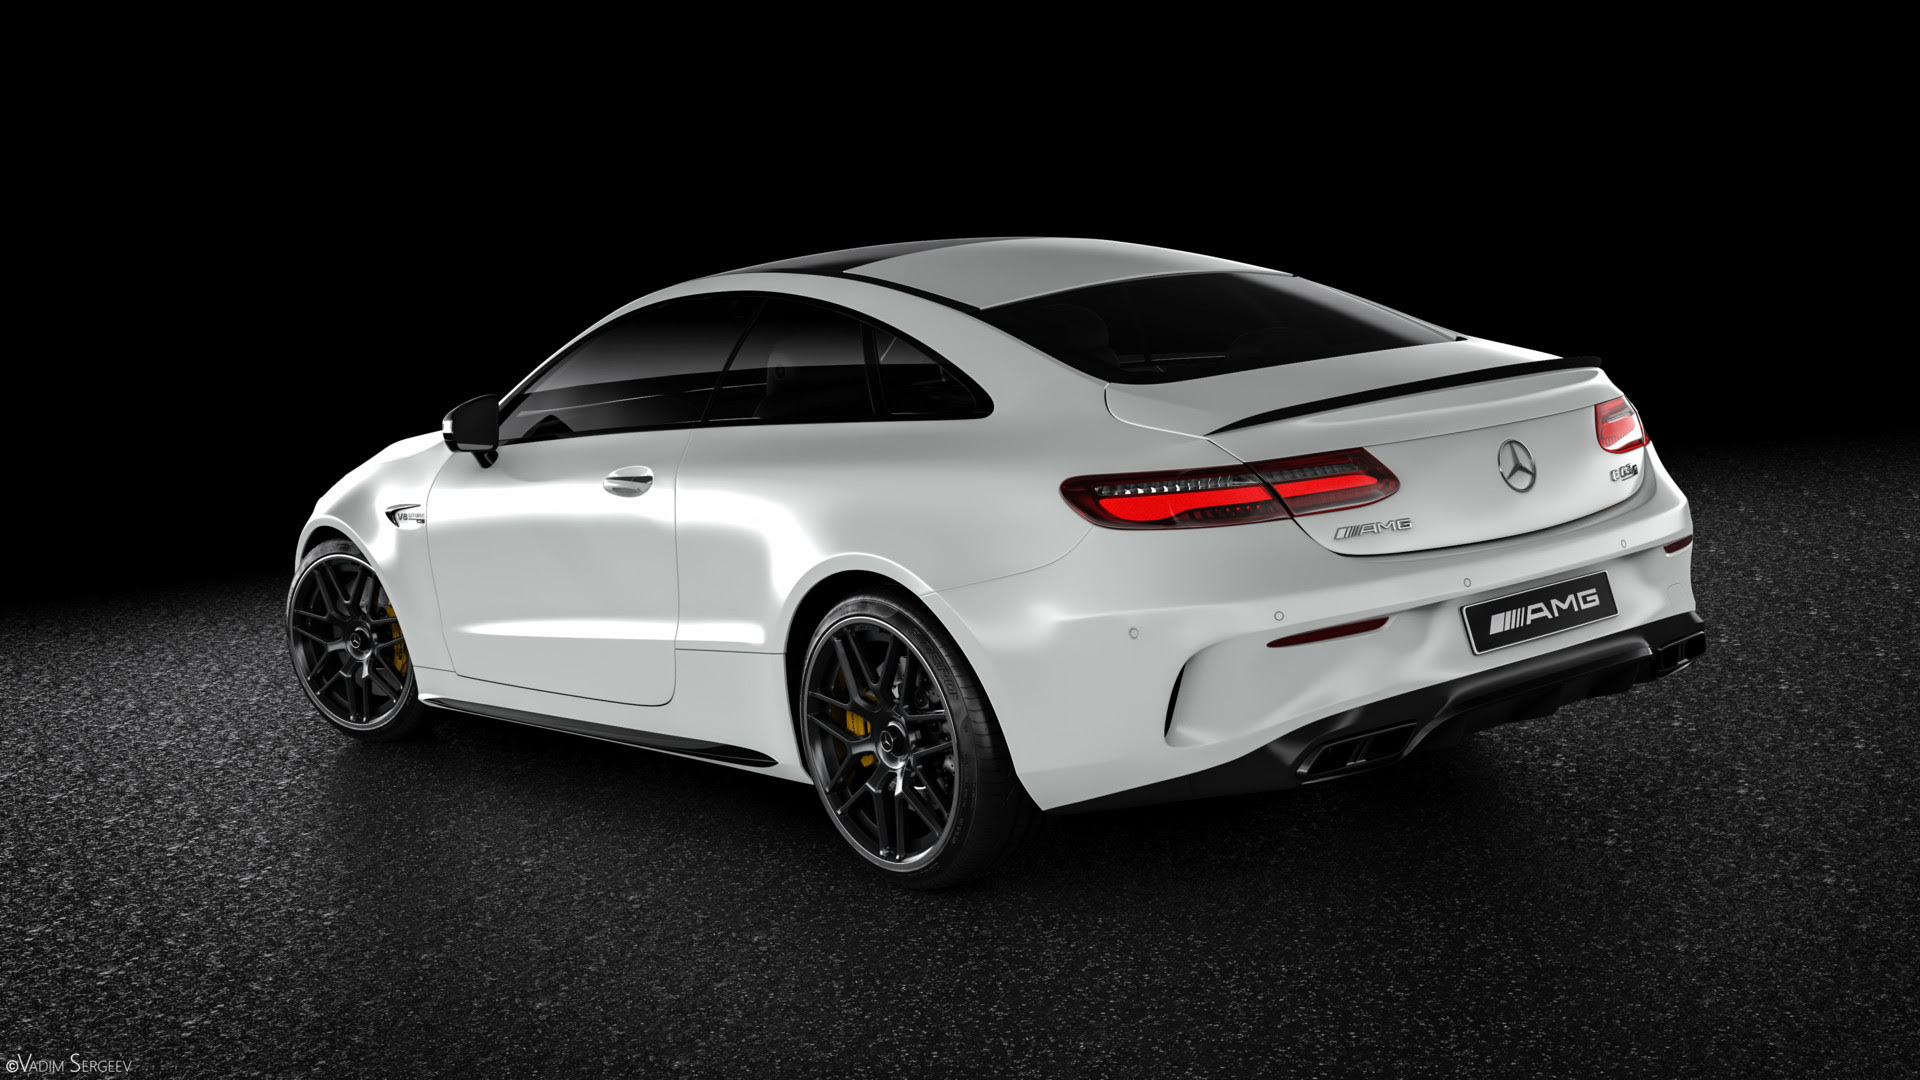 Incredible Mercedes-AMG E63 S Coupe Renderings Show Why It ...